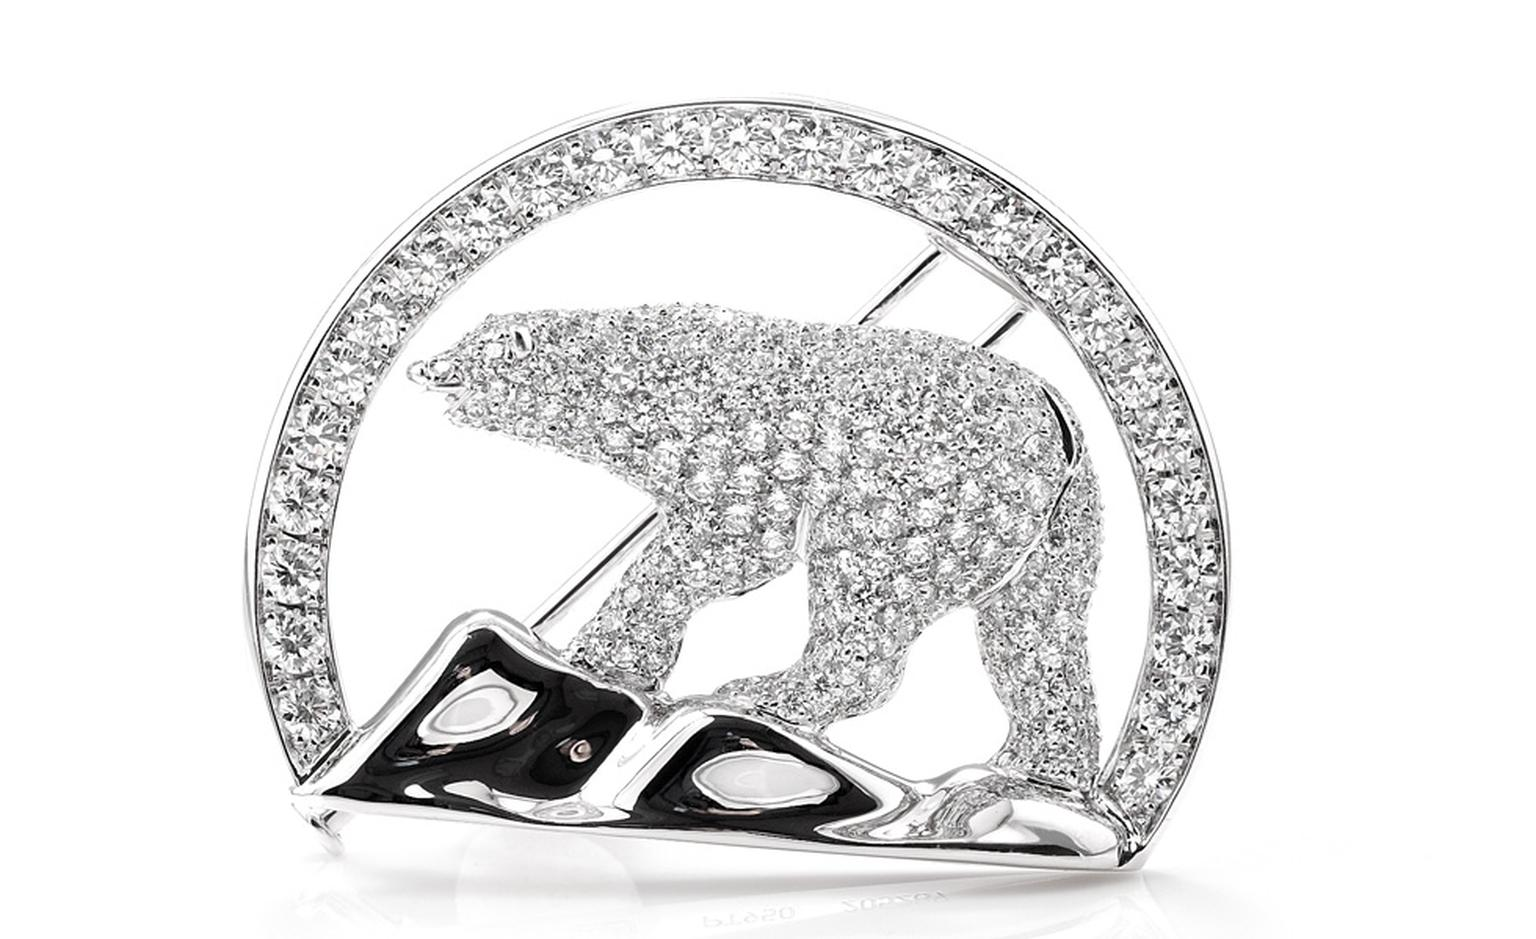 The polar bear brooch given to the Duchess of Cambridge by the the Northwest Territory and its people featuring the region's official logo. The diamonds from the Diavik mine in the Northwest Territories.